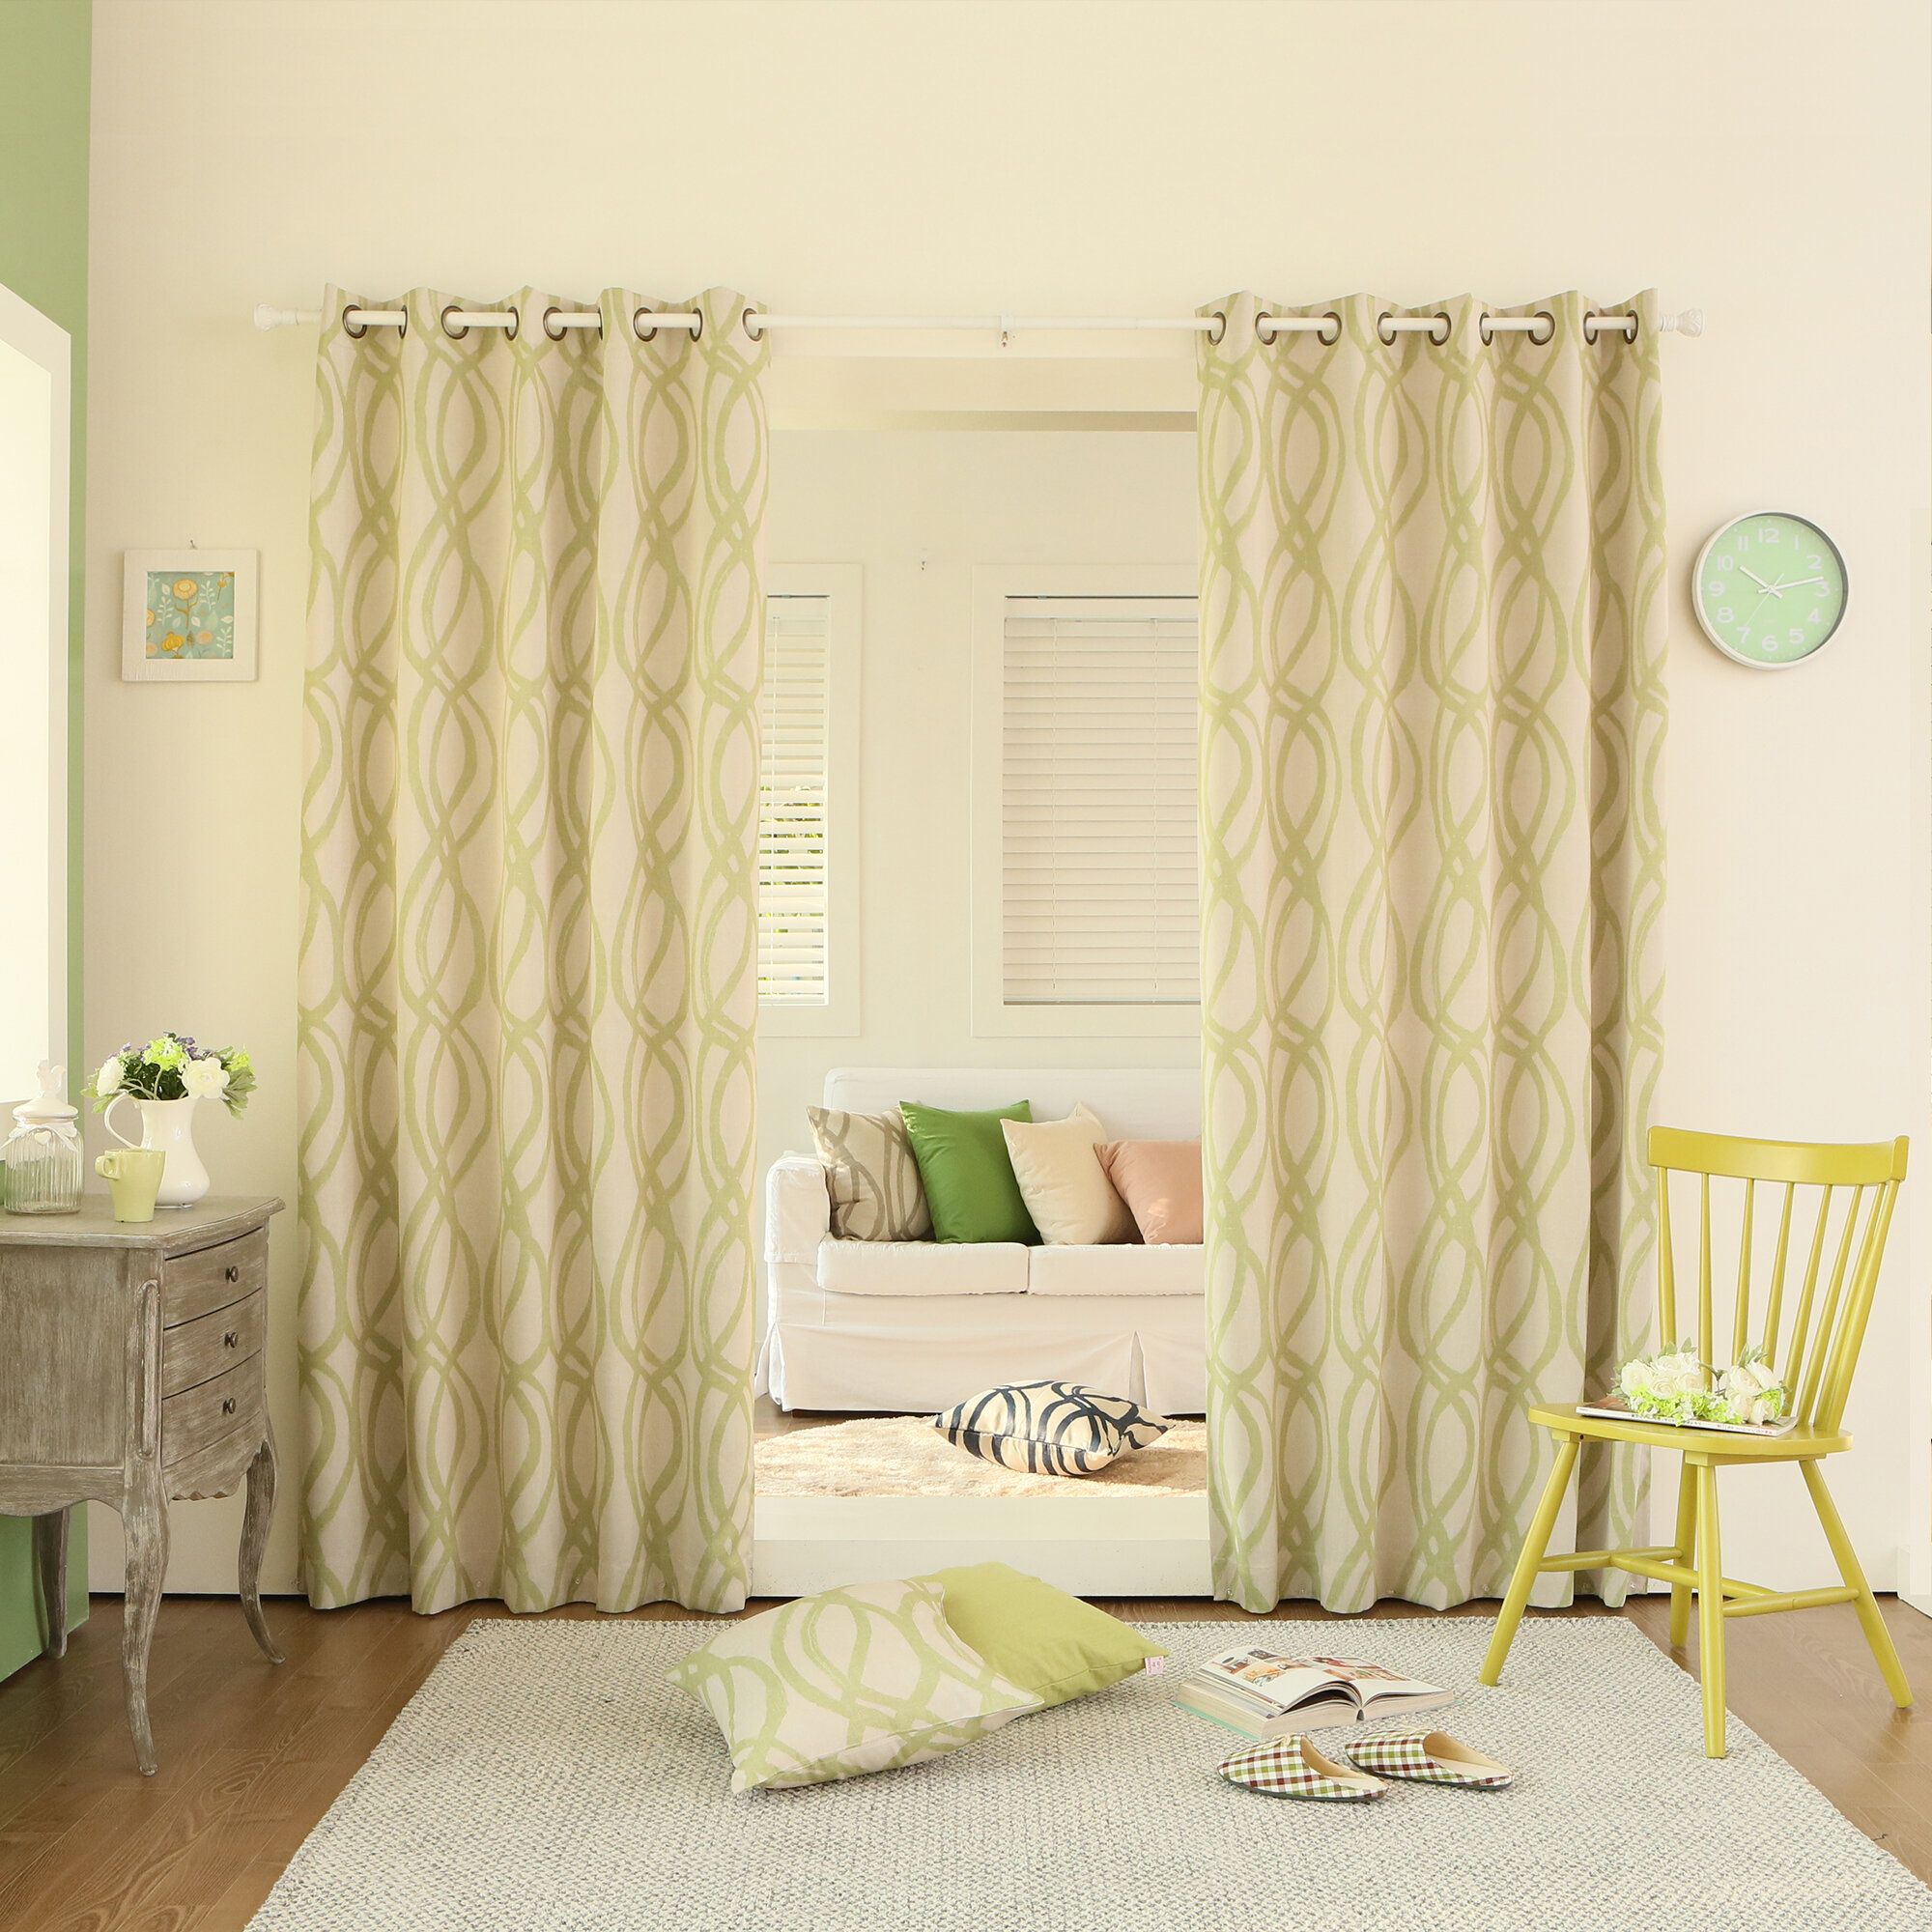 house dpp banding closed colour curtains category lights sheer gallery timms of on in above over ceiling drapes recessed bed curtain ivp